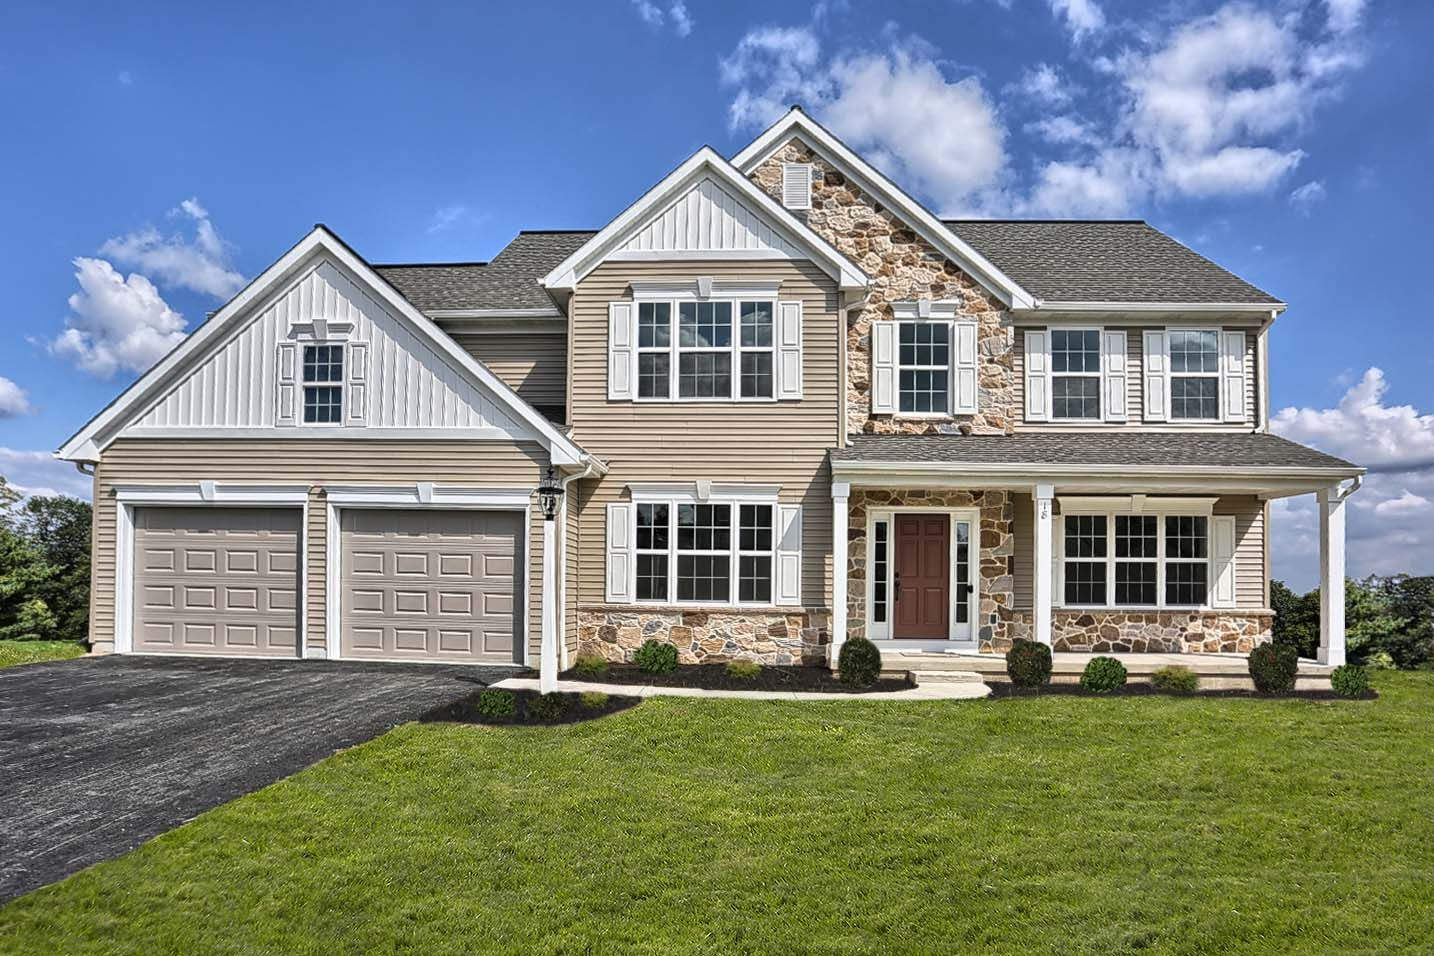 18 Shelduck Lane, Mechanicsburg, PA Homes & Land - Real Estate